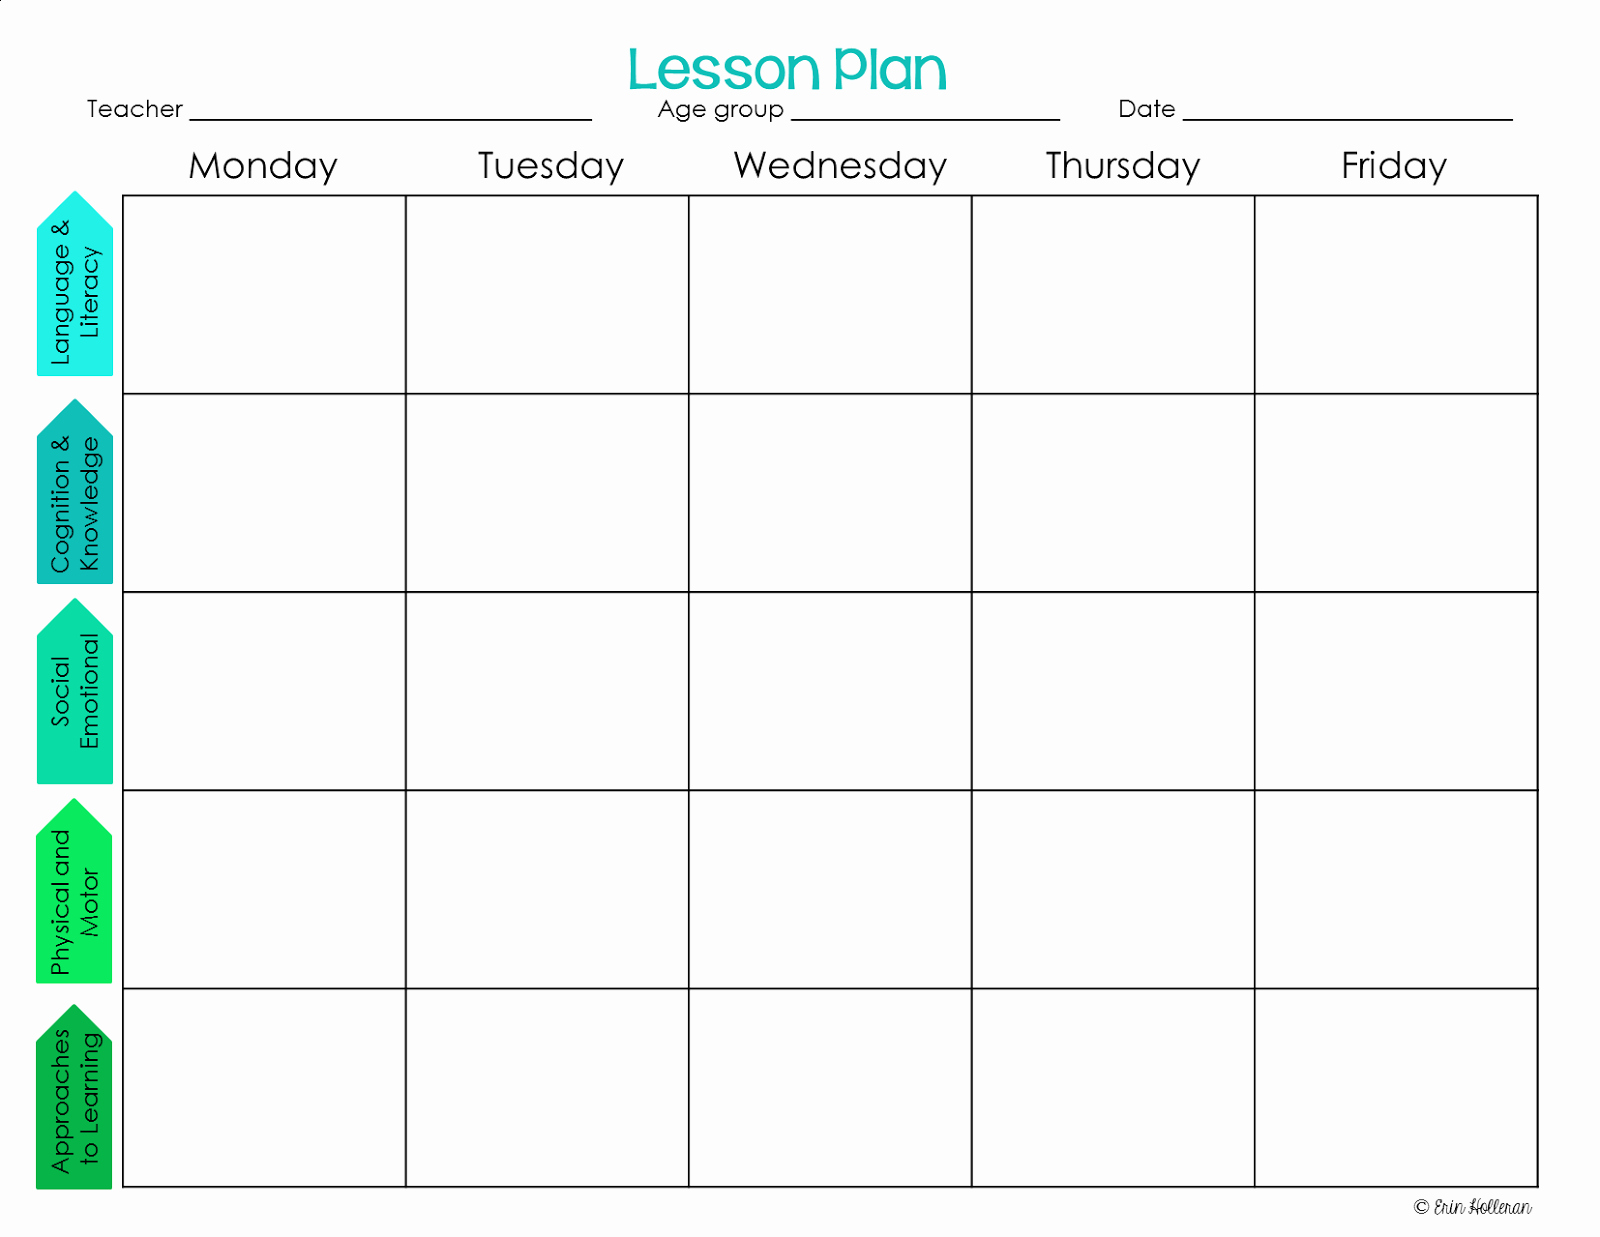 Free Printable Weekly Lesson Plan Template